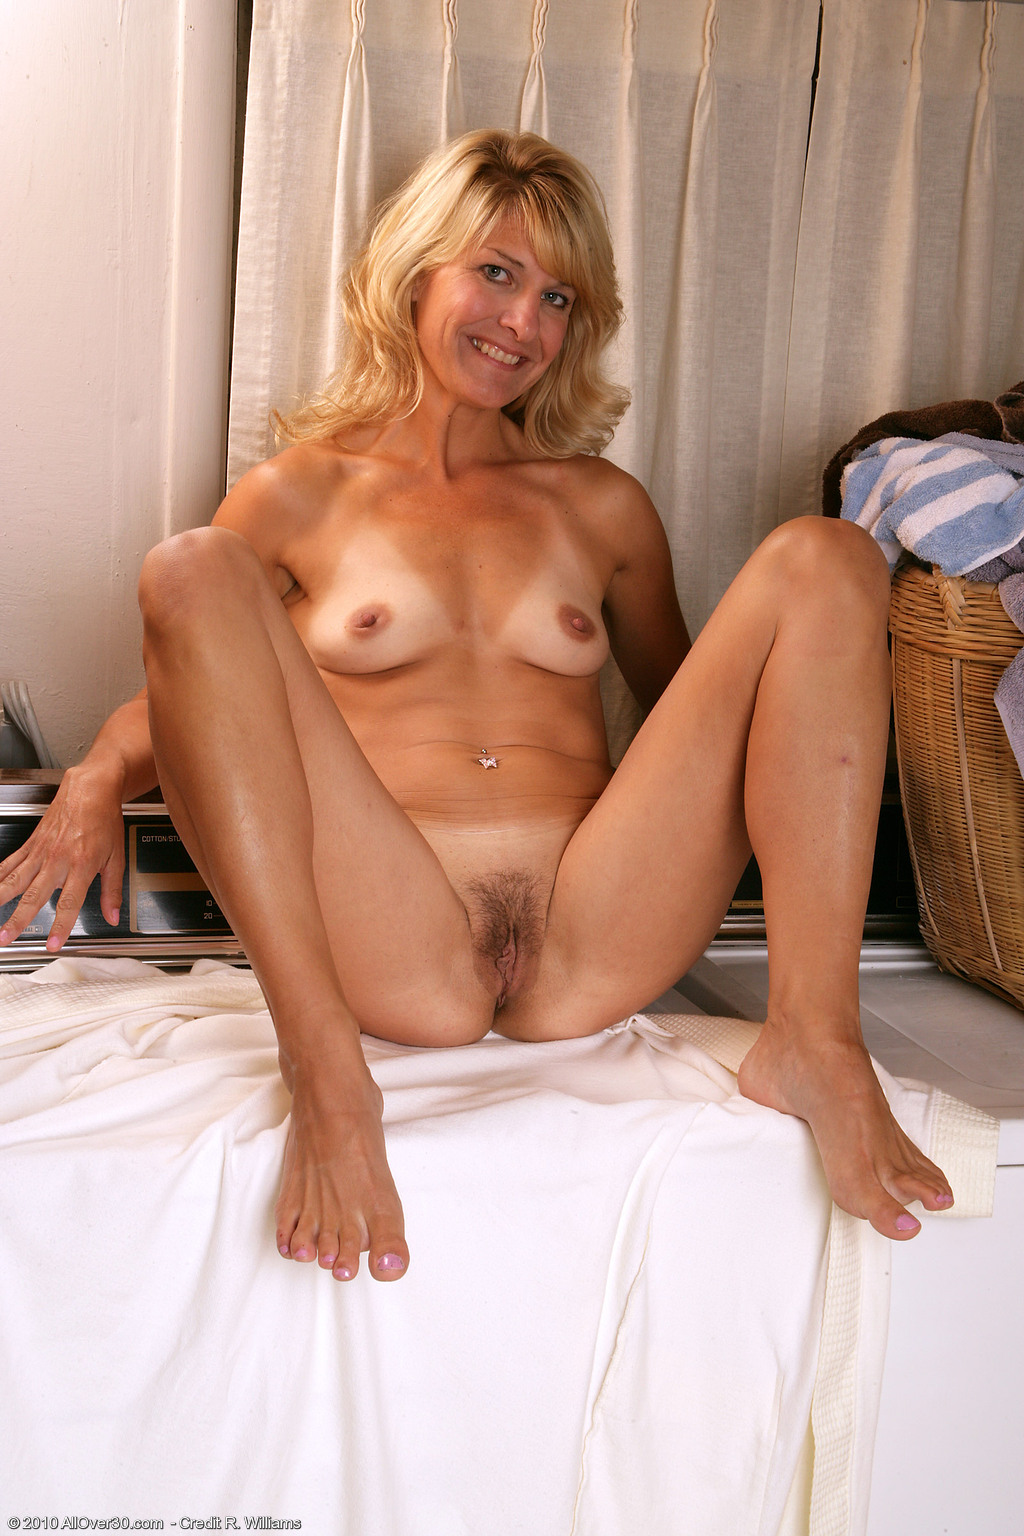 Naked old women nude